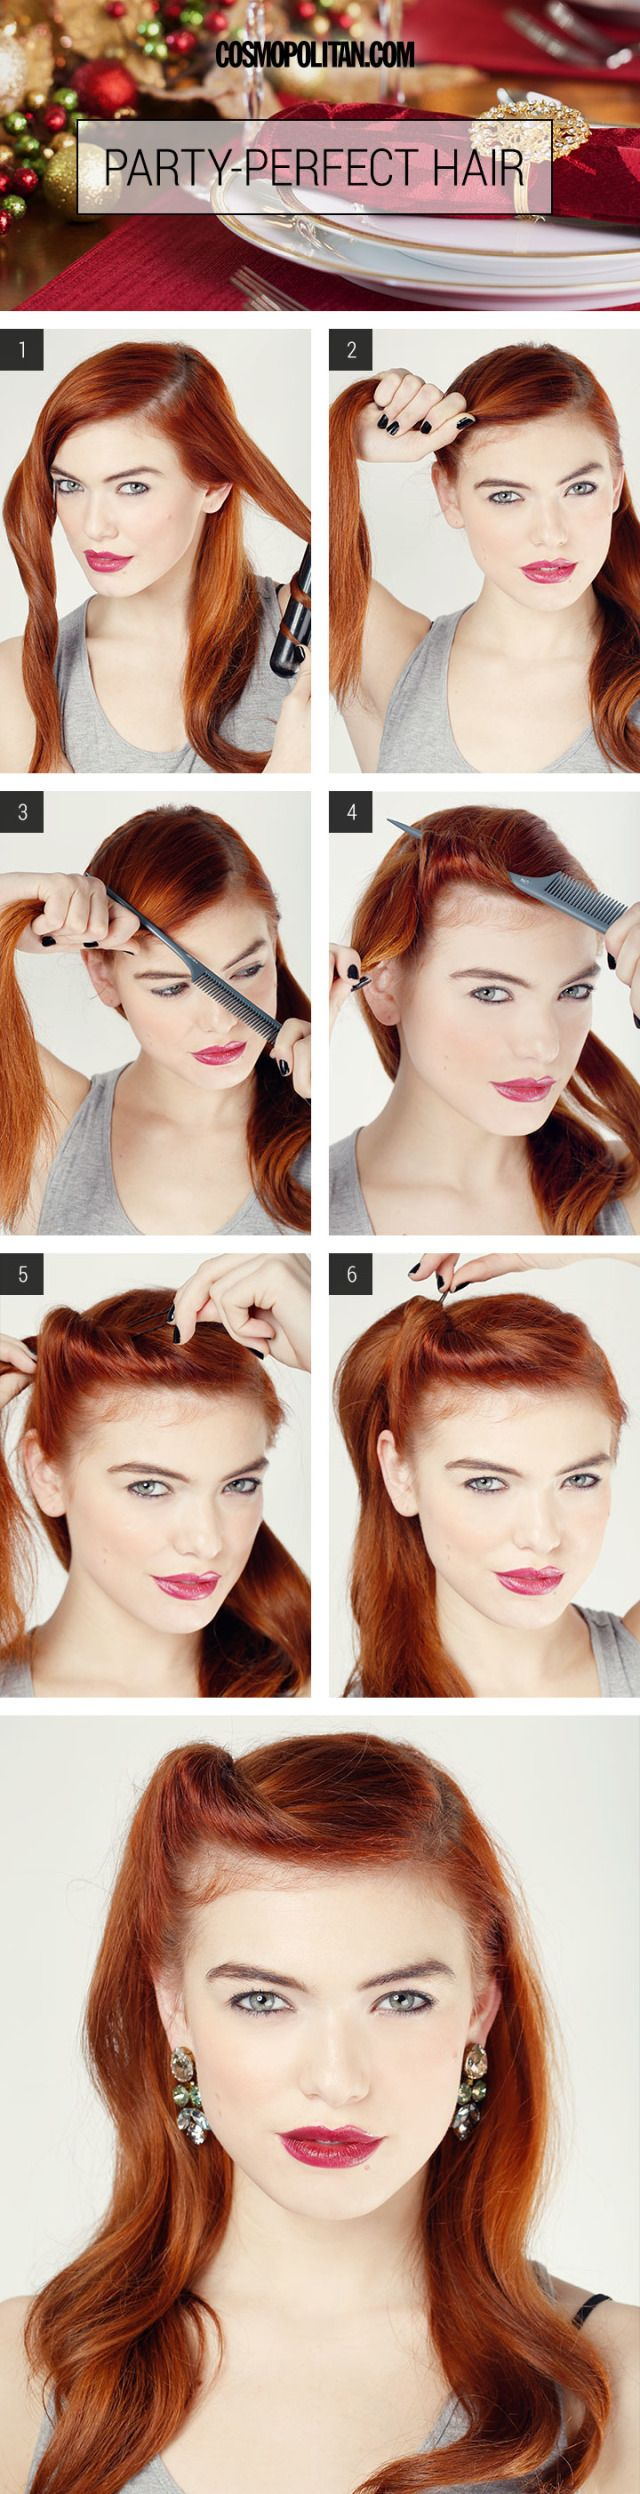 Cute easy hairstyles that kids can do - 12 Super Easy Hair Looks Every Woman Can Do In 5 Minutes